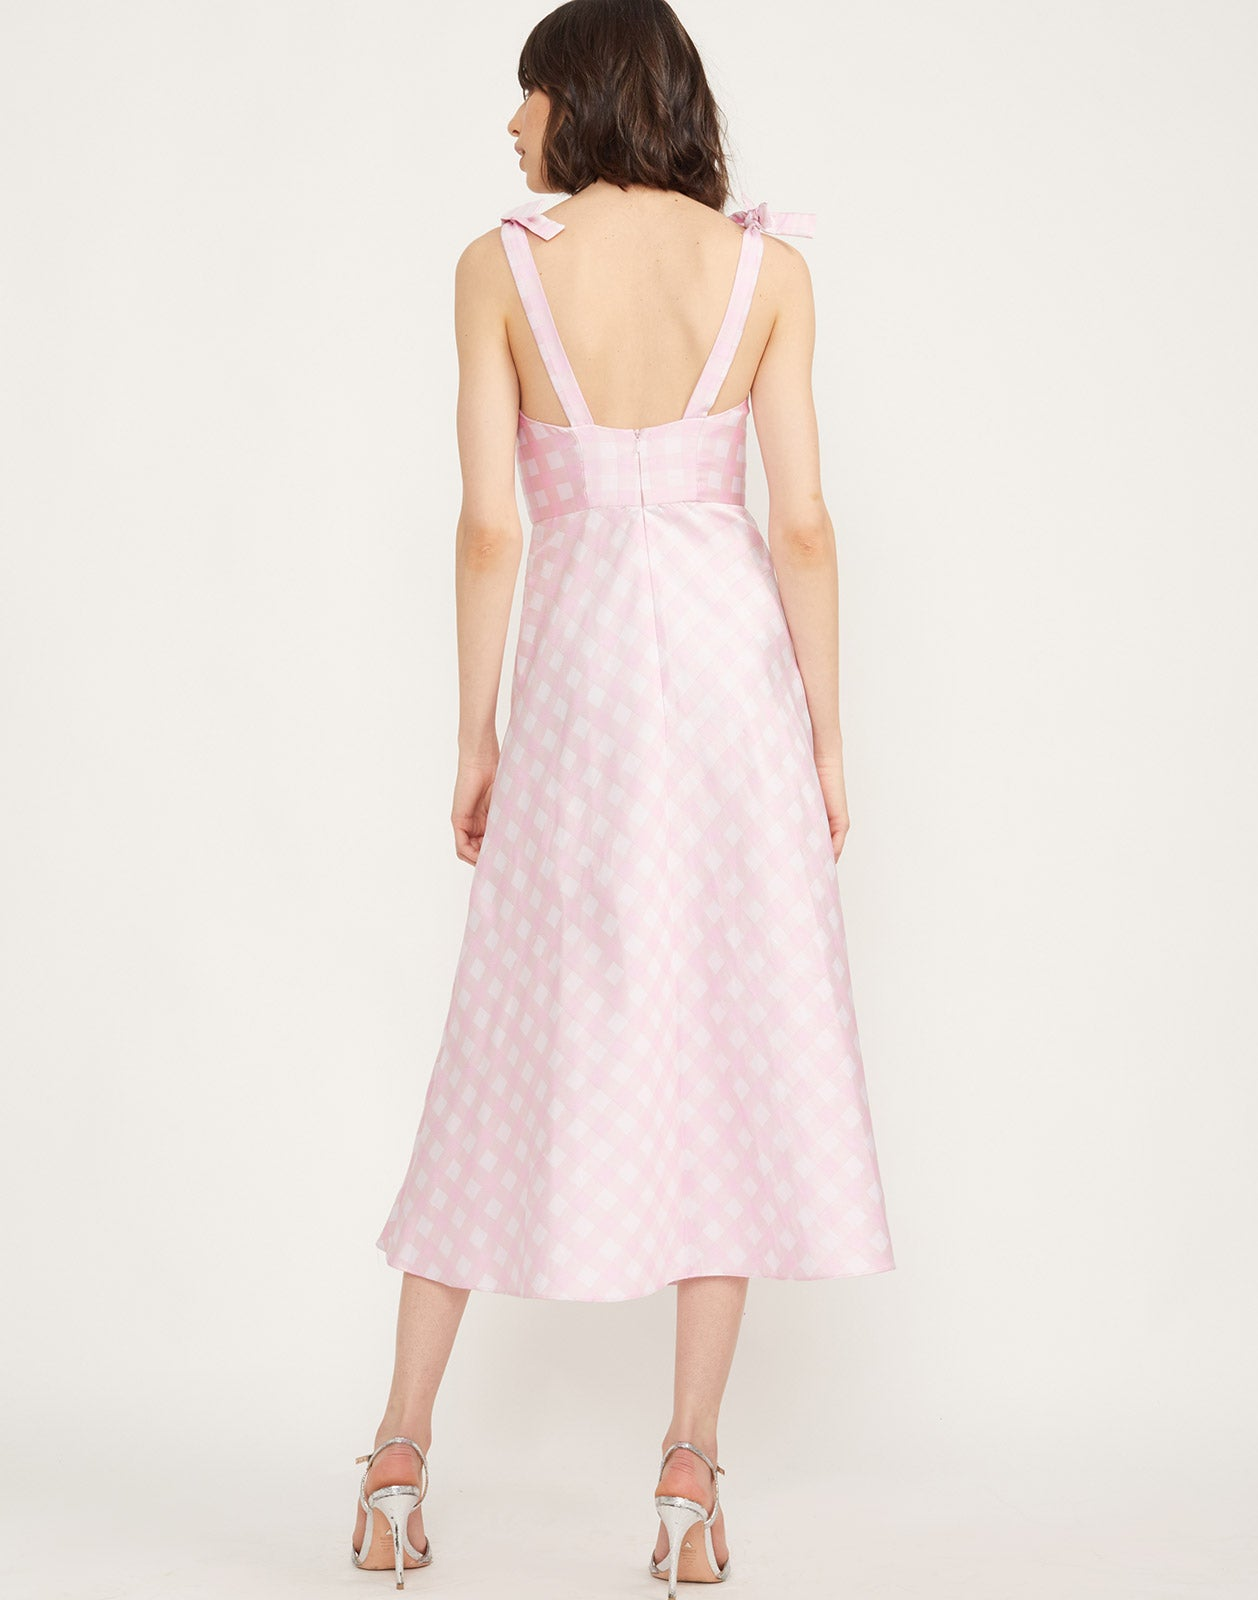 Back view of the Easton Gingham Midi Dress